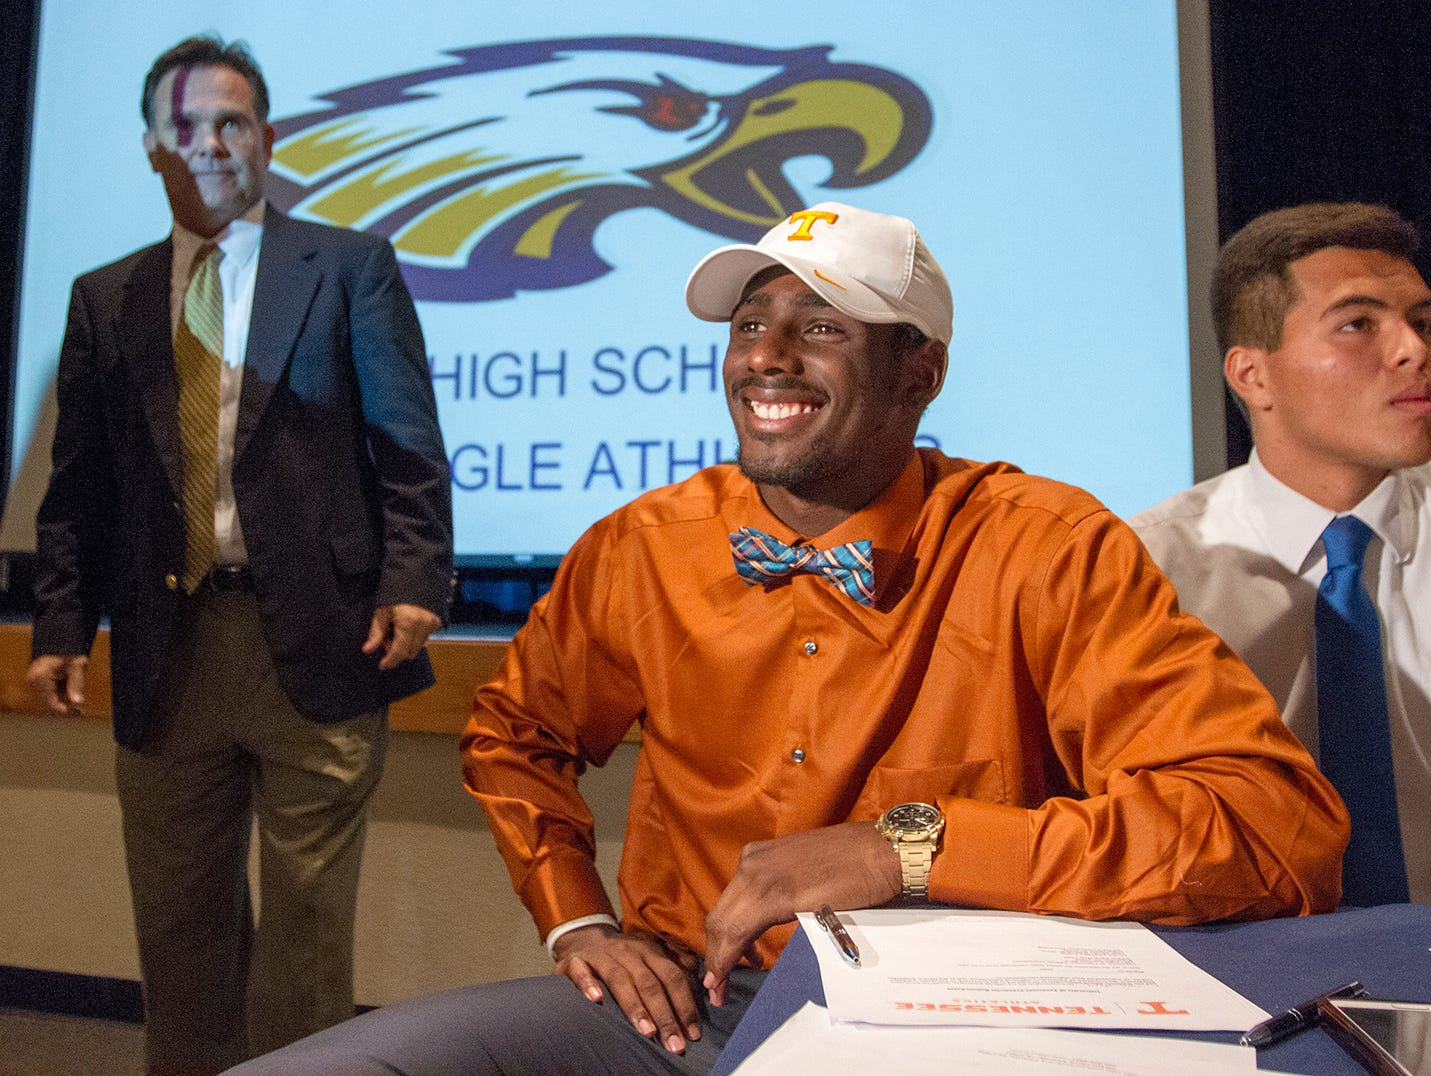 Naples High School's Tyler Byrd was among the school's athletes who signed National Letters of Intent Wednesday at the school. Byrd will play football at the University of Tennessee.